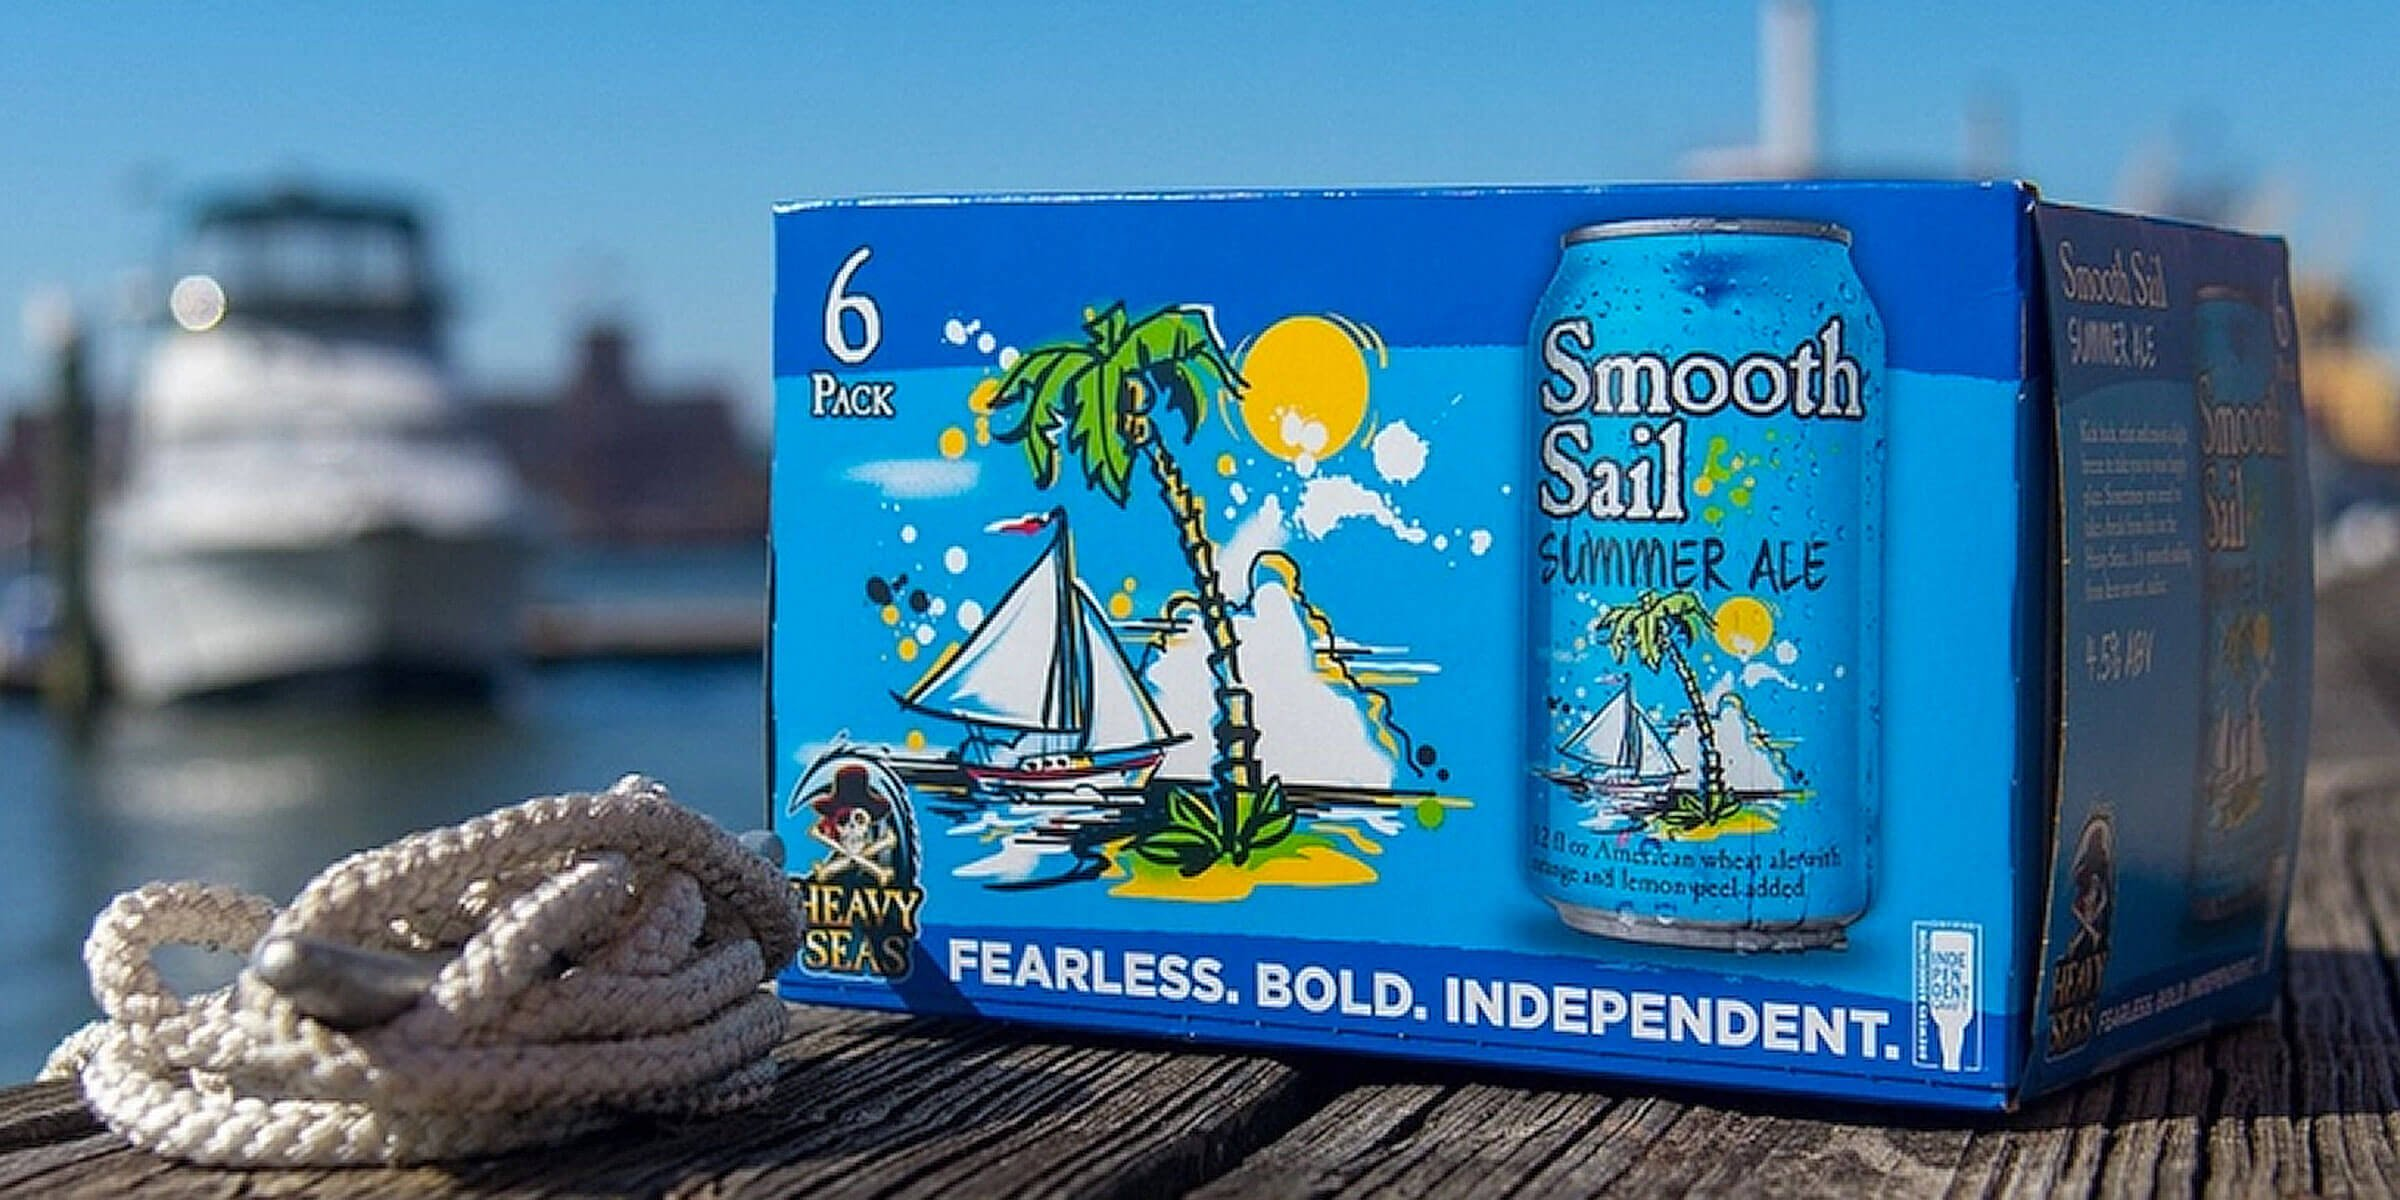 Six pack of 12 oz. cans of the Smooth Sail Summer Ale by Heavy Seas Beer